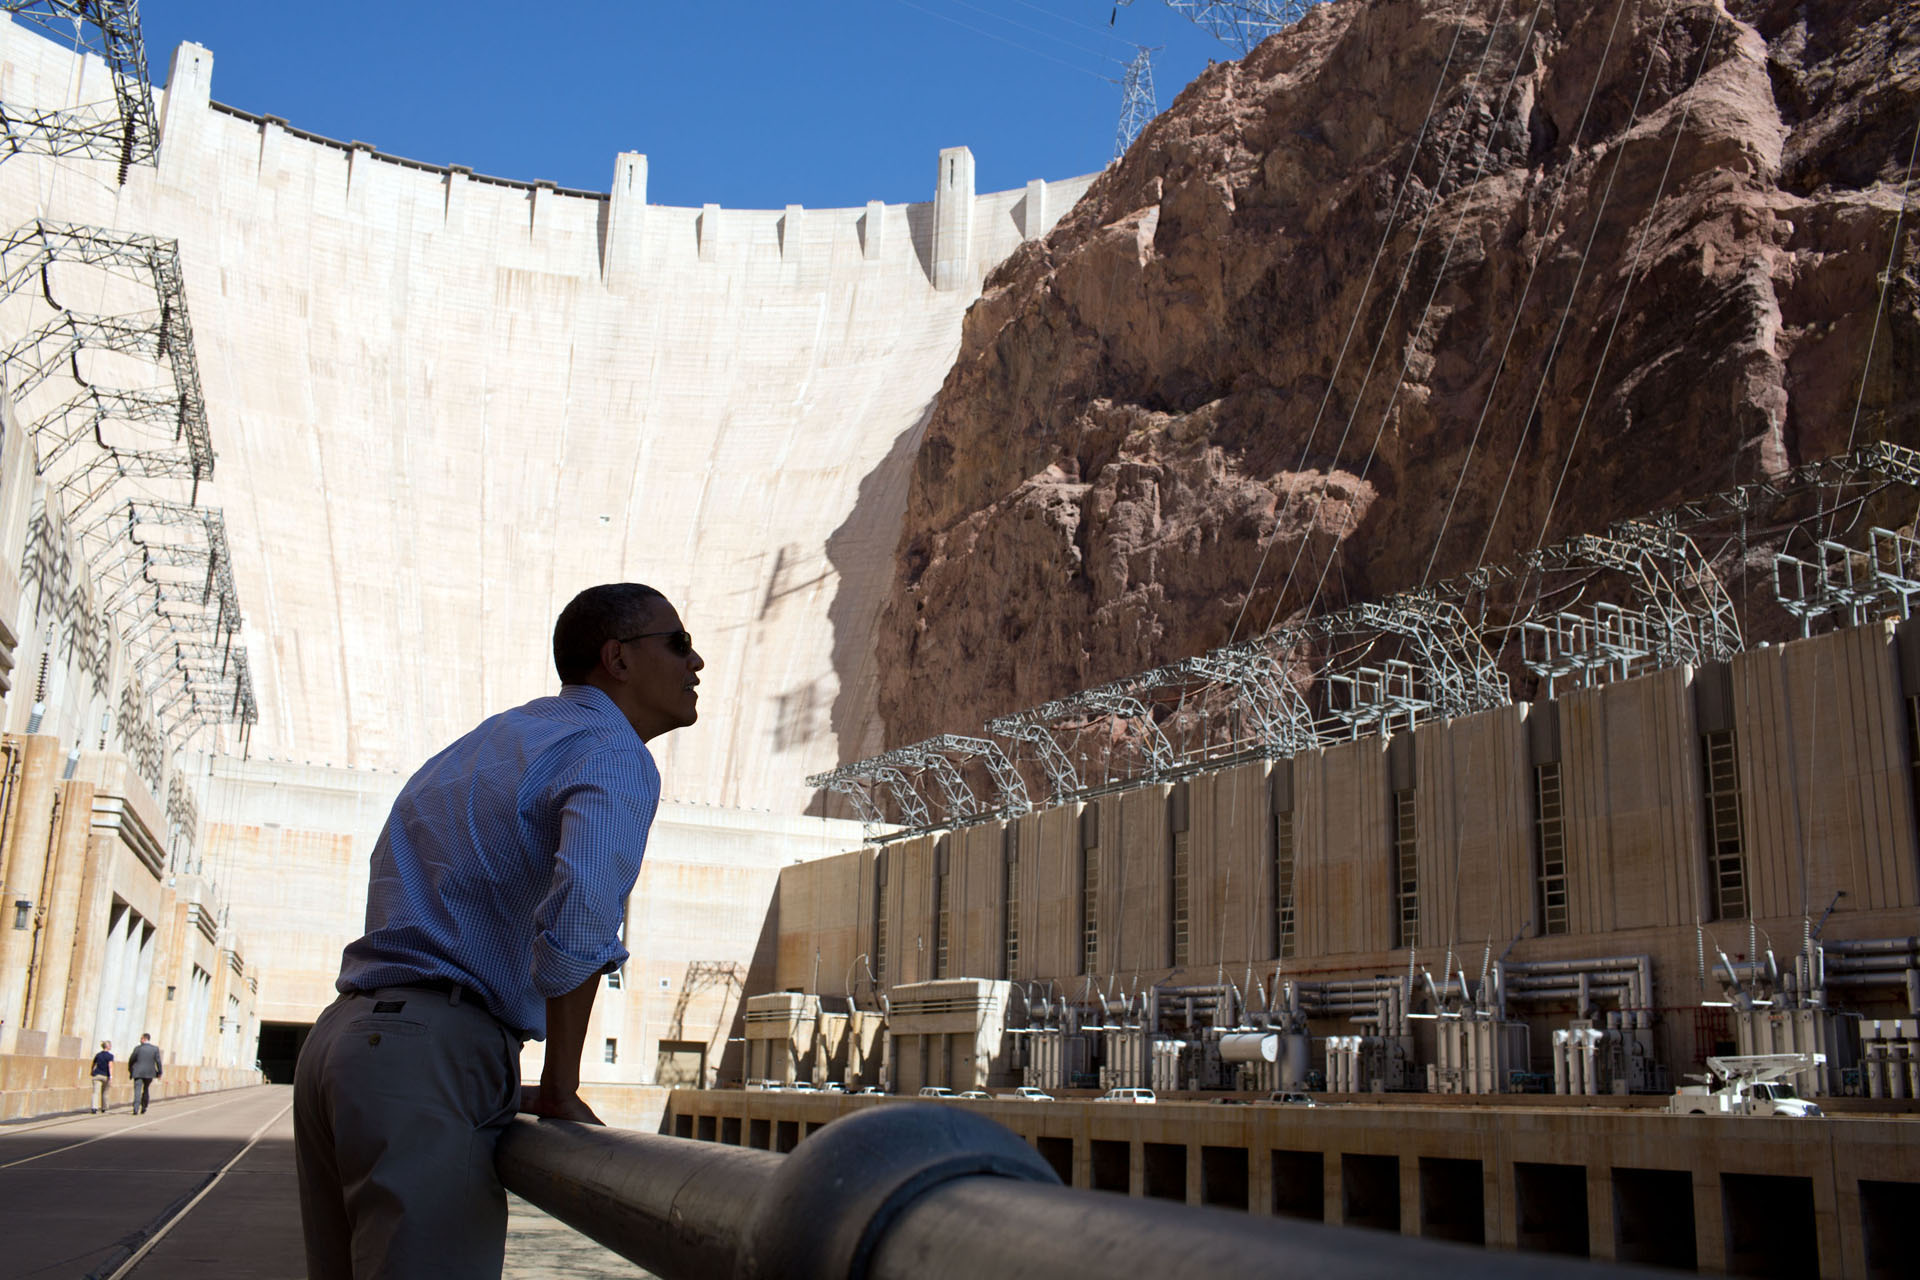 This Day in History: Construction Began on Hoover Dam | whitehouse gov